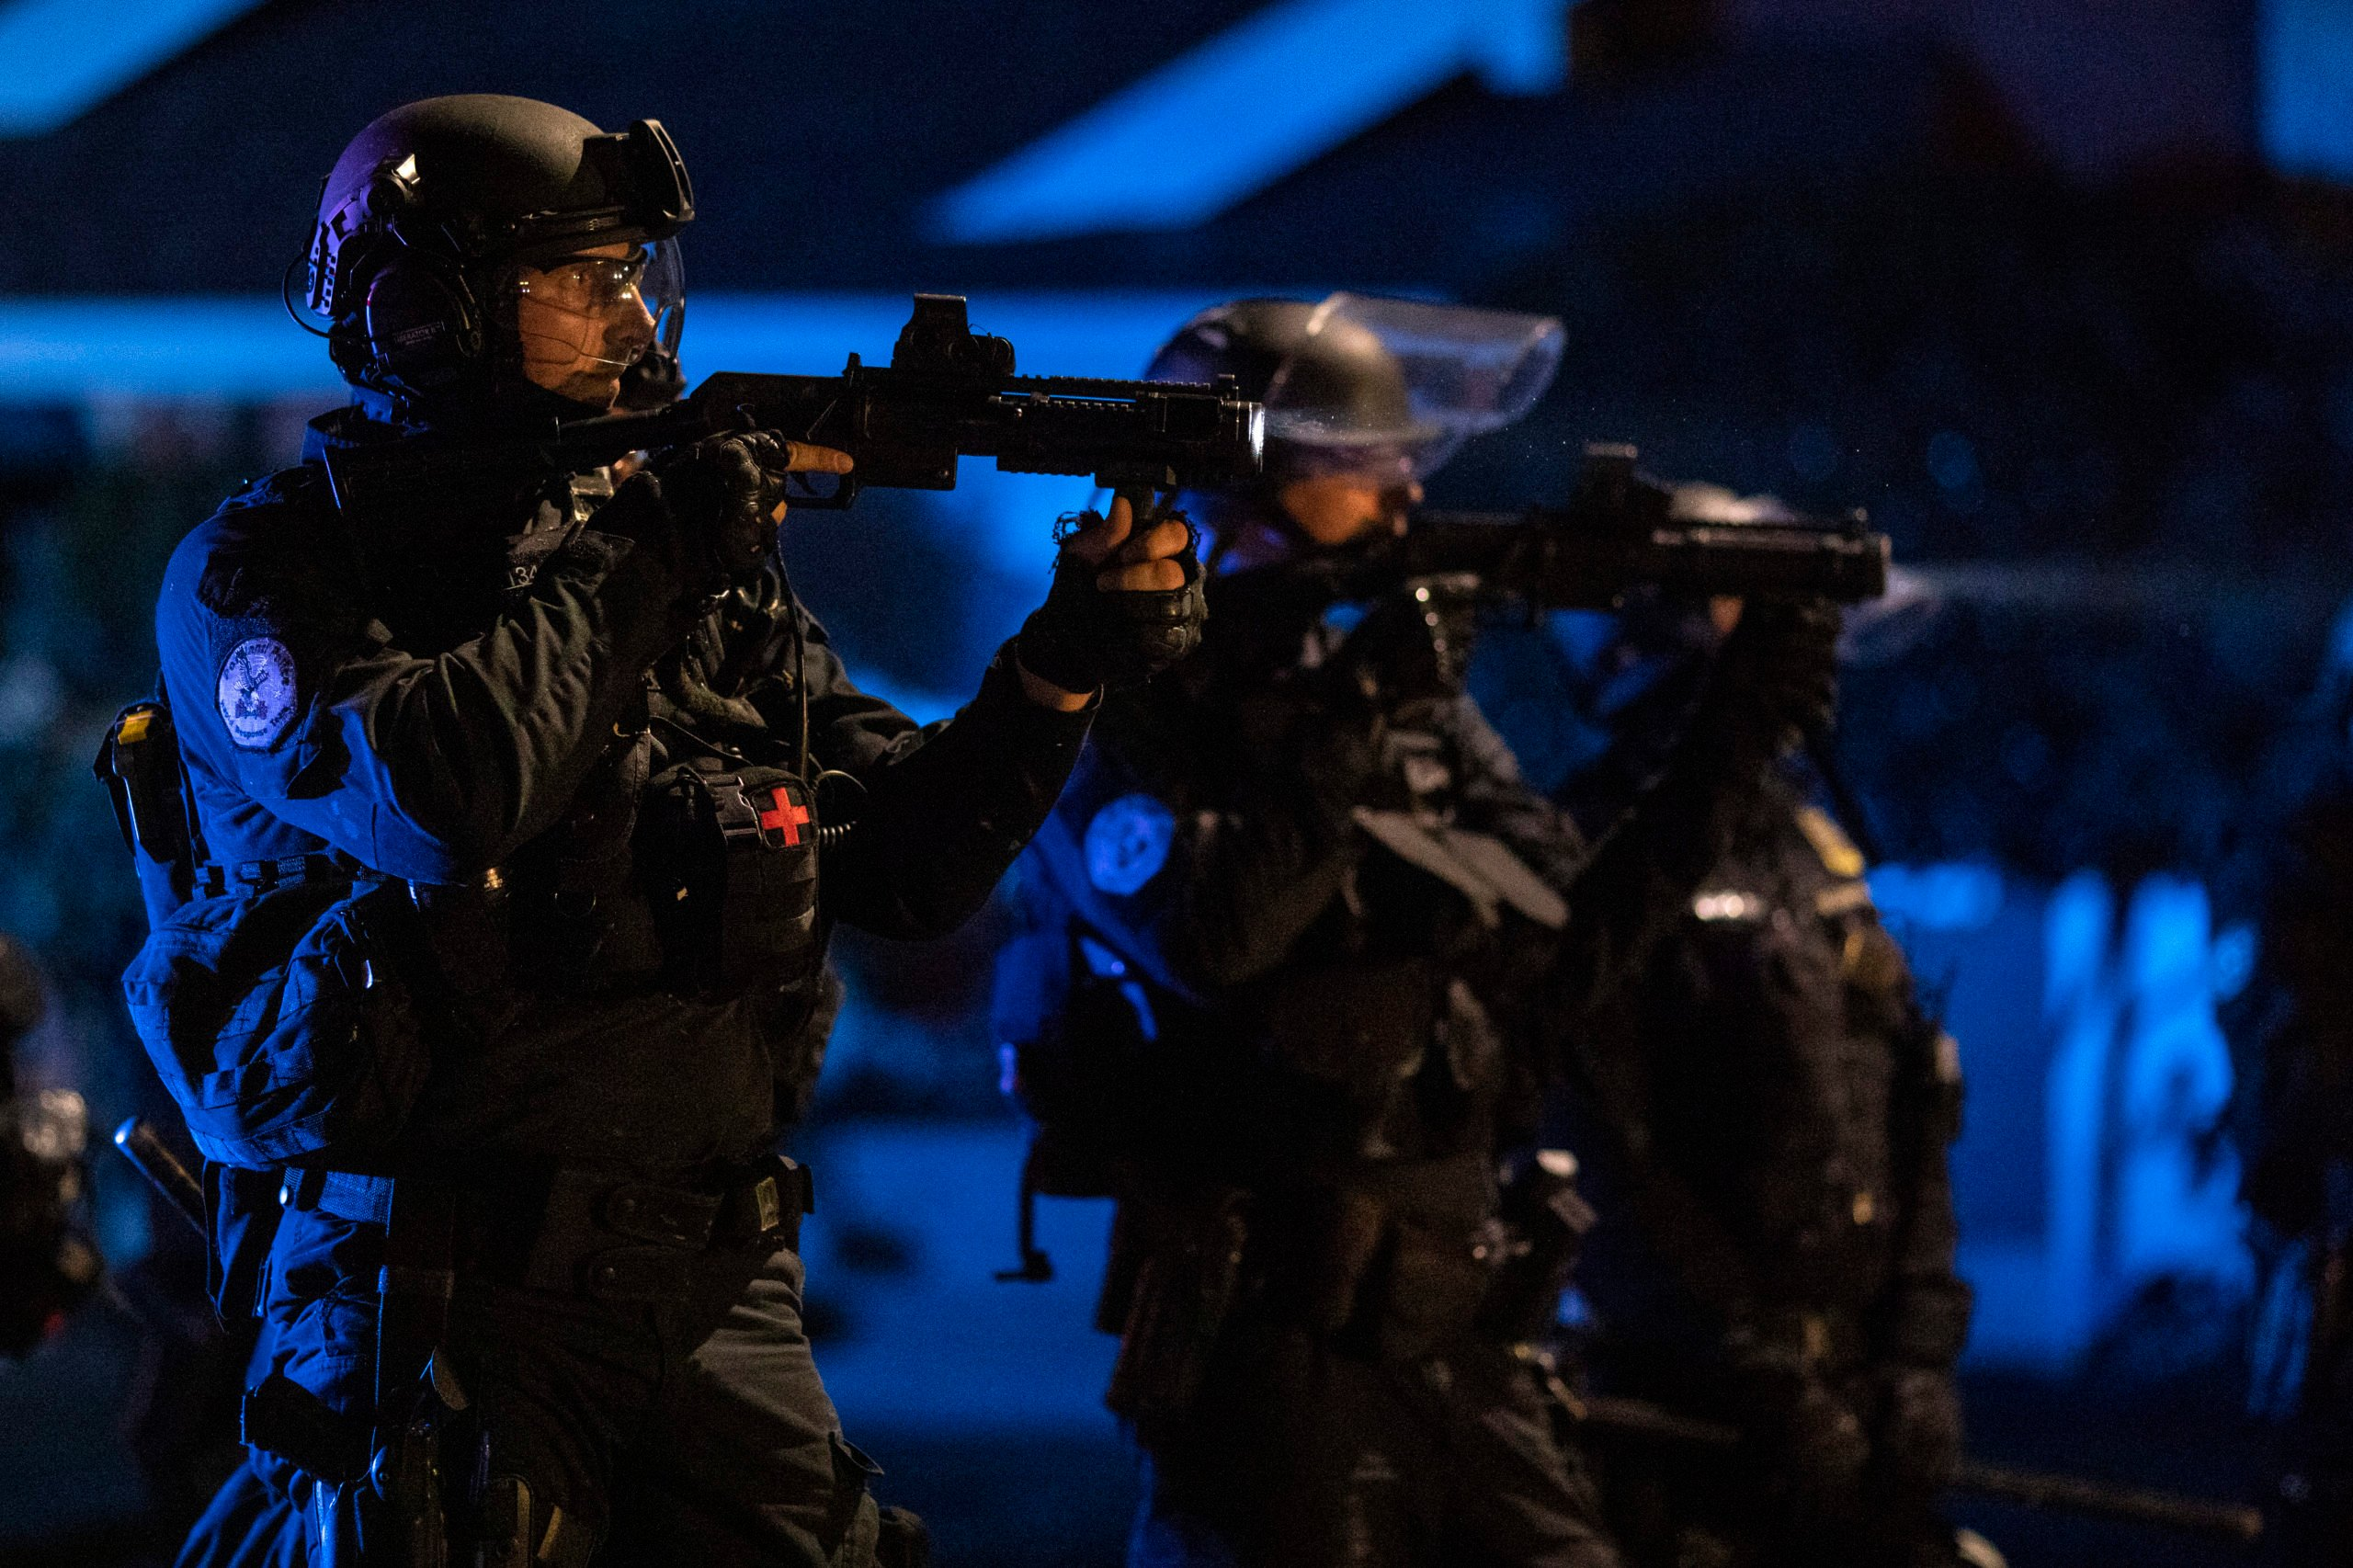 PORTLAND, OR - AUGUST 16 : Portland police are seen in riot gear during a standoff with protesters in Portland, Oregon on August 16, 2020. Protests have continued for the 80th consecutive night in Portland since the killing of George Floyd. (Photo by Paula Bronstein/Getty Images )